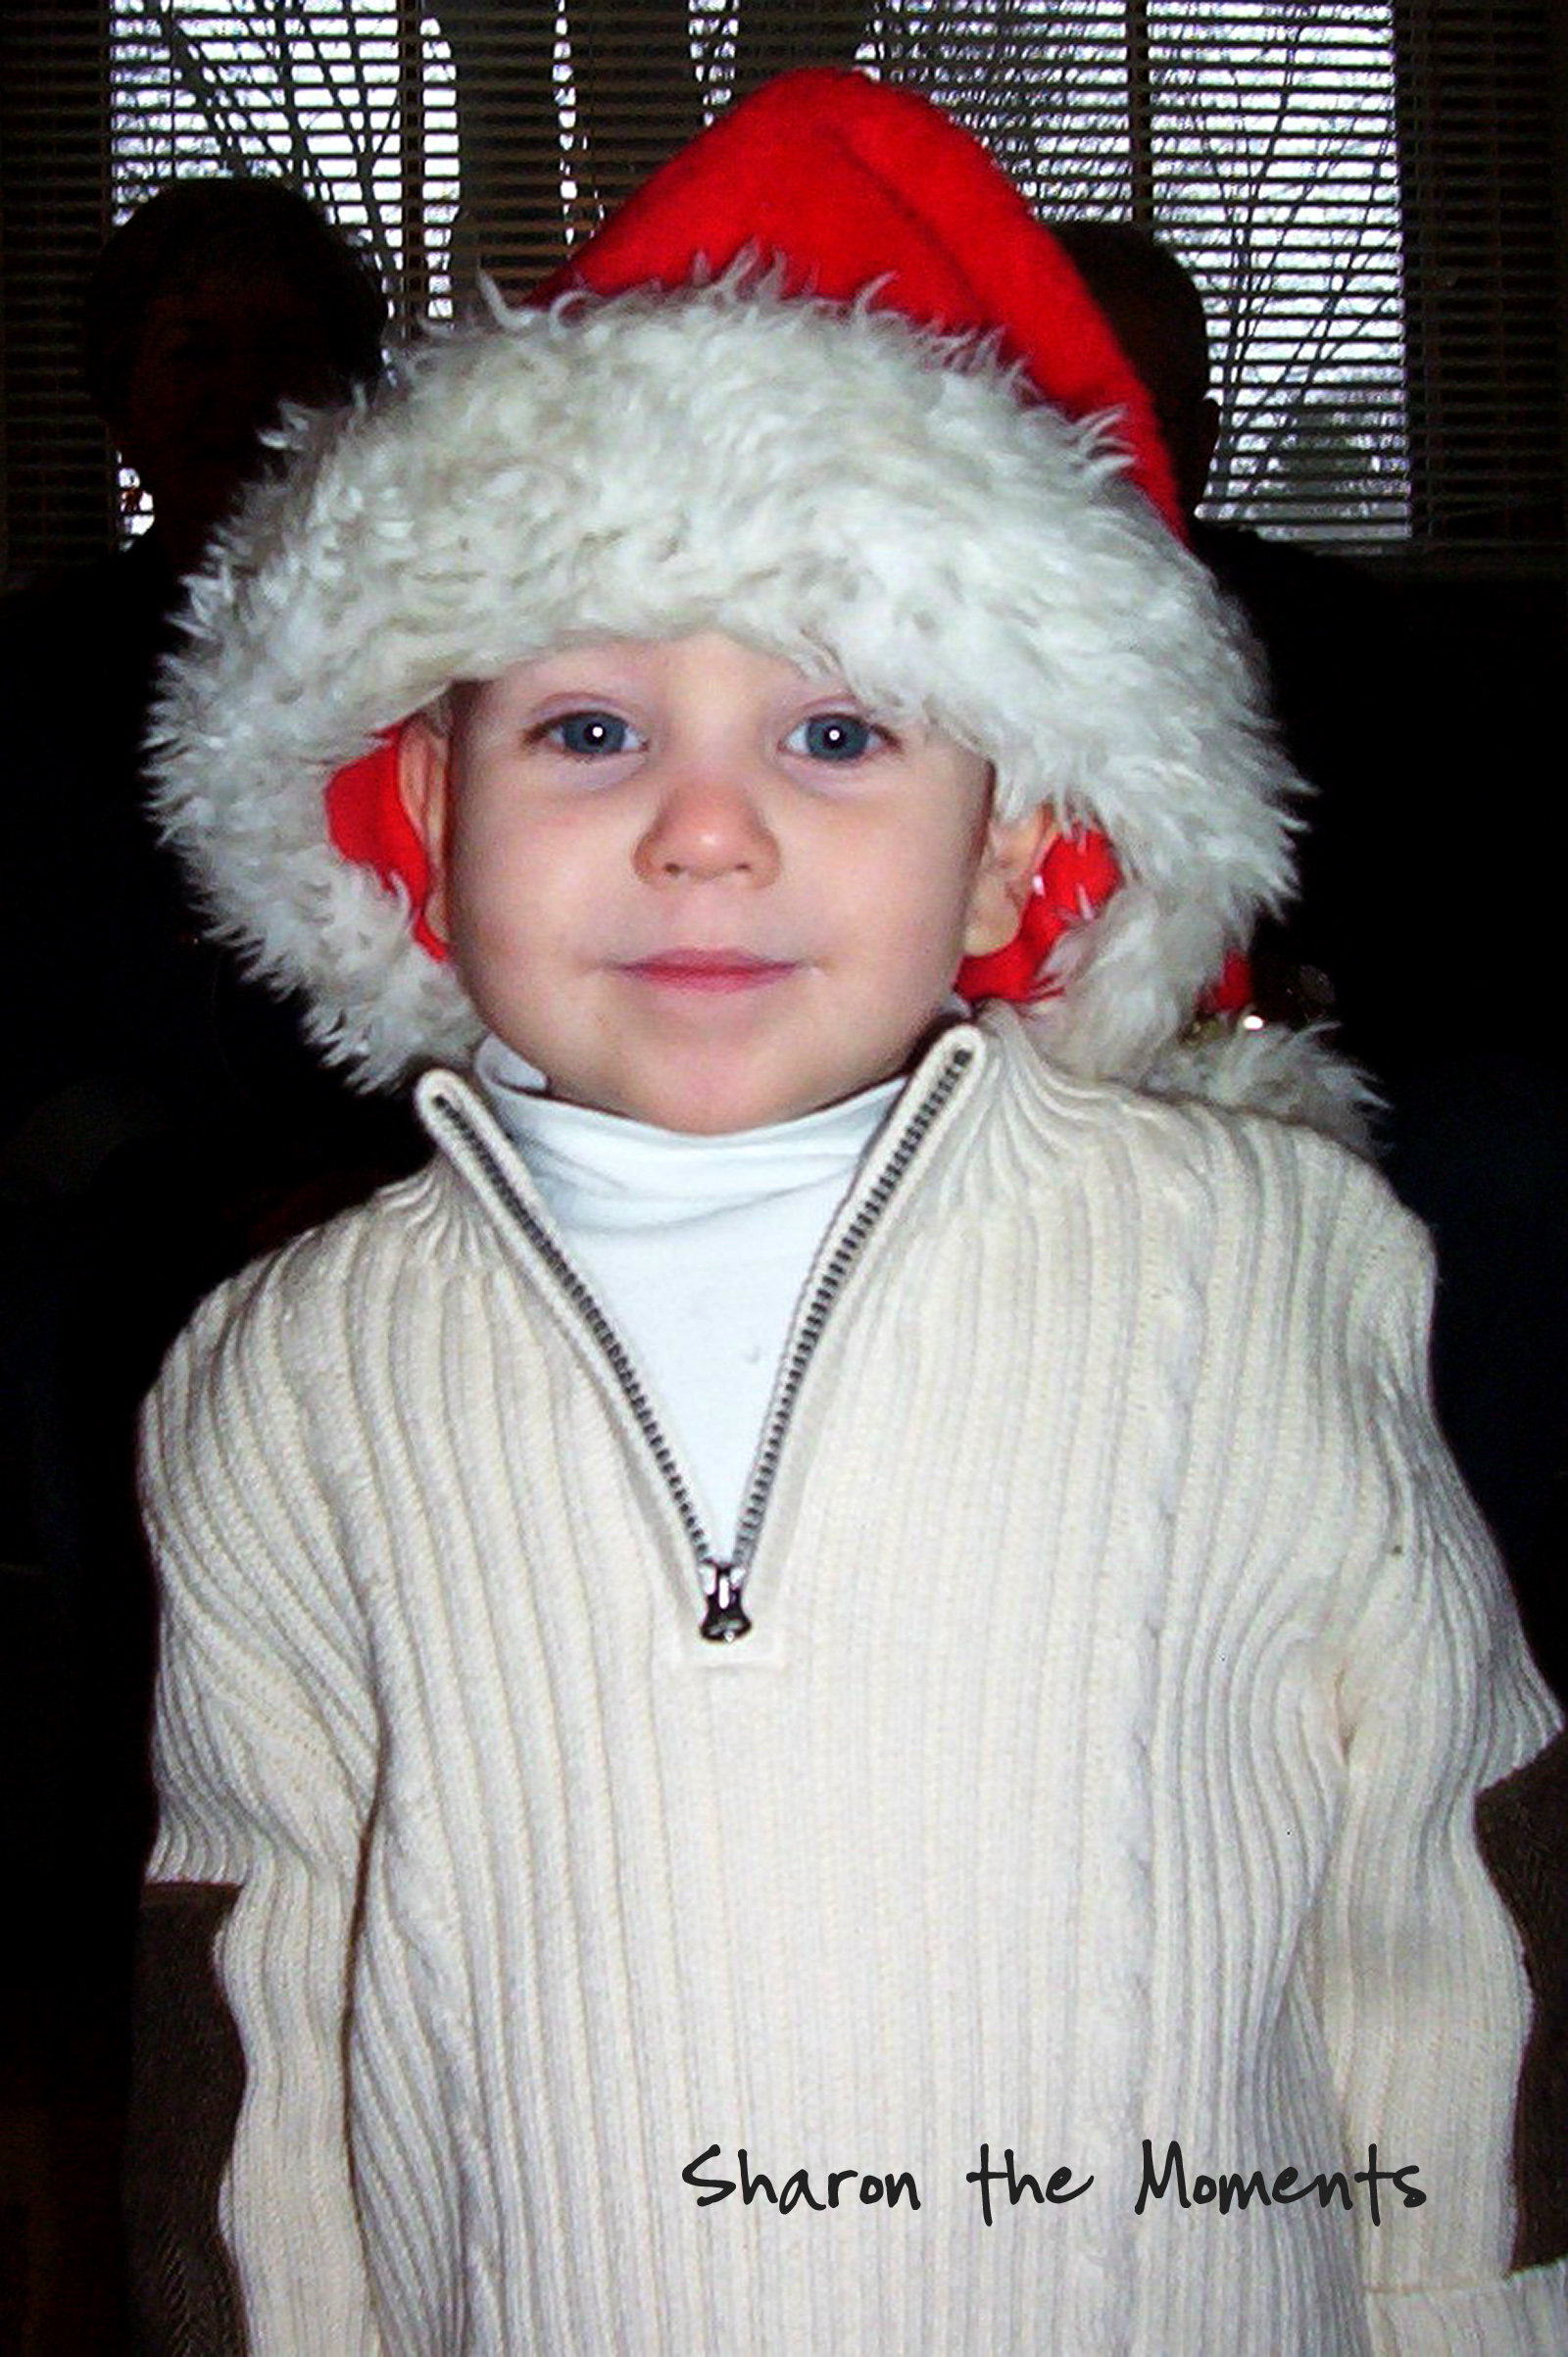 Christmas Past kiddo Circa 2006|Sharon the Moments blog